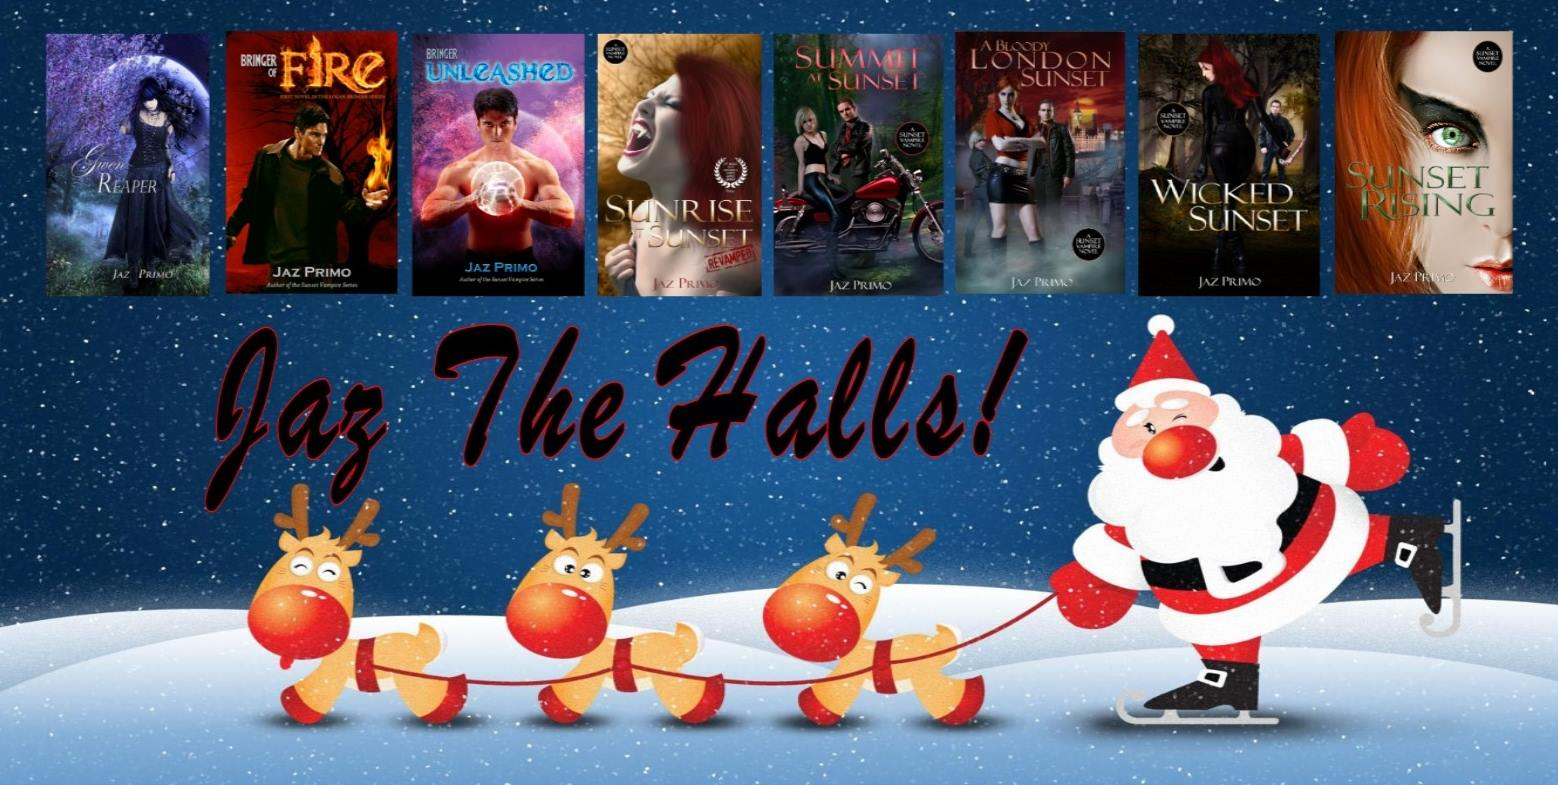 """Santa says, """"Christmas is coming, so take part in Jaz the Halls!"""""""